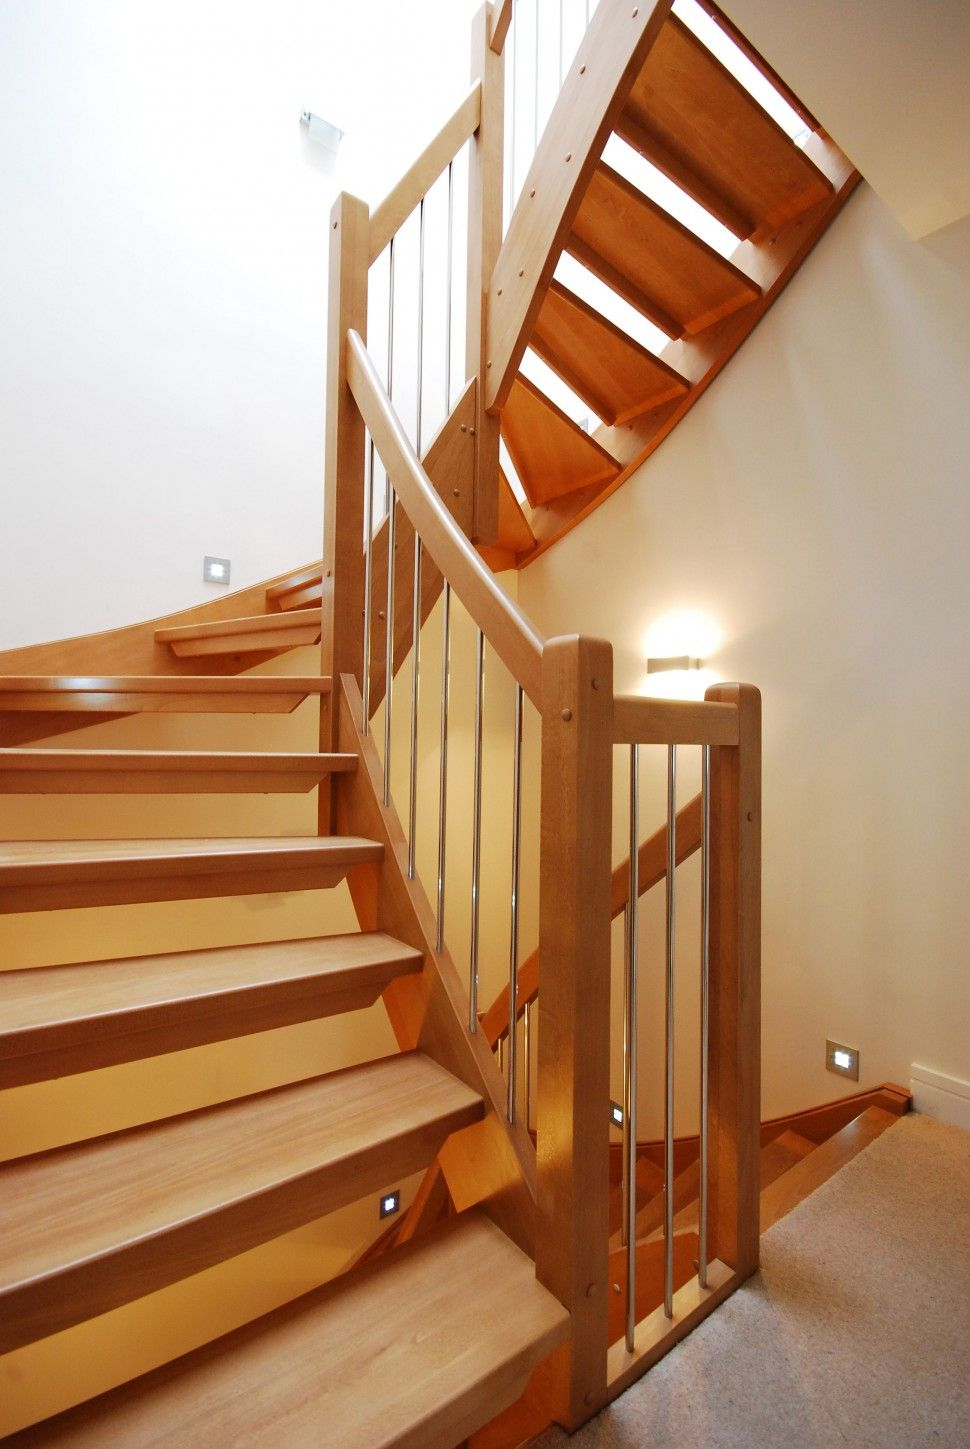 Best Wooden Handrail For Stairs For Classic Look Handrail 400 x 300